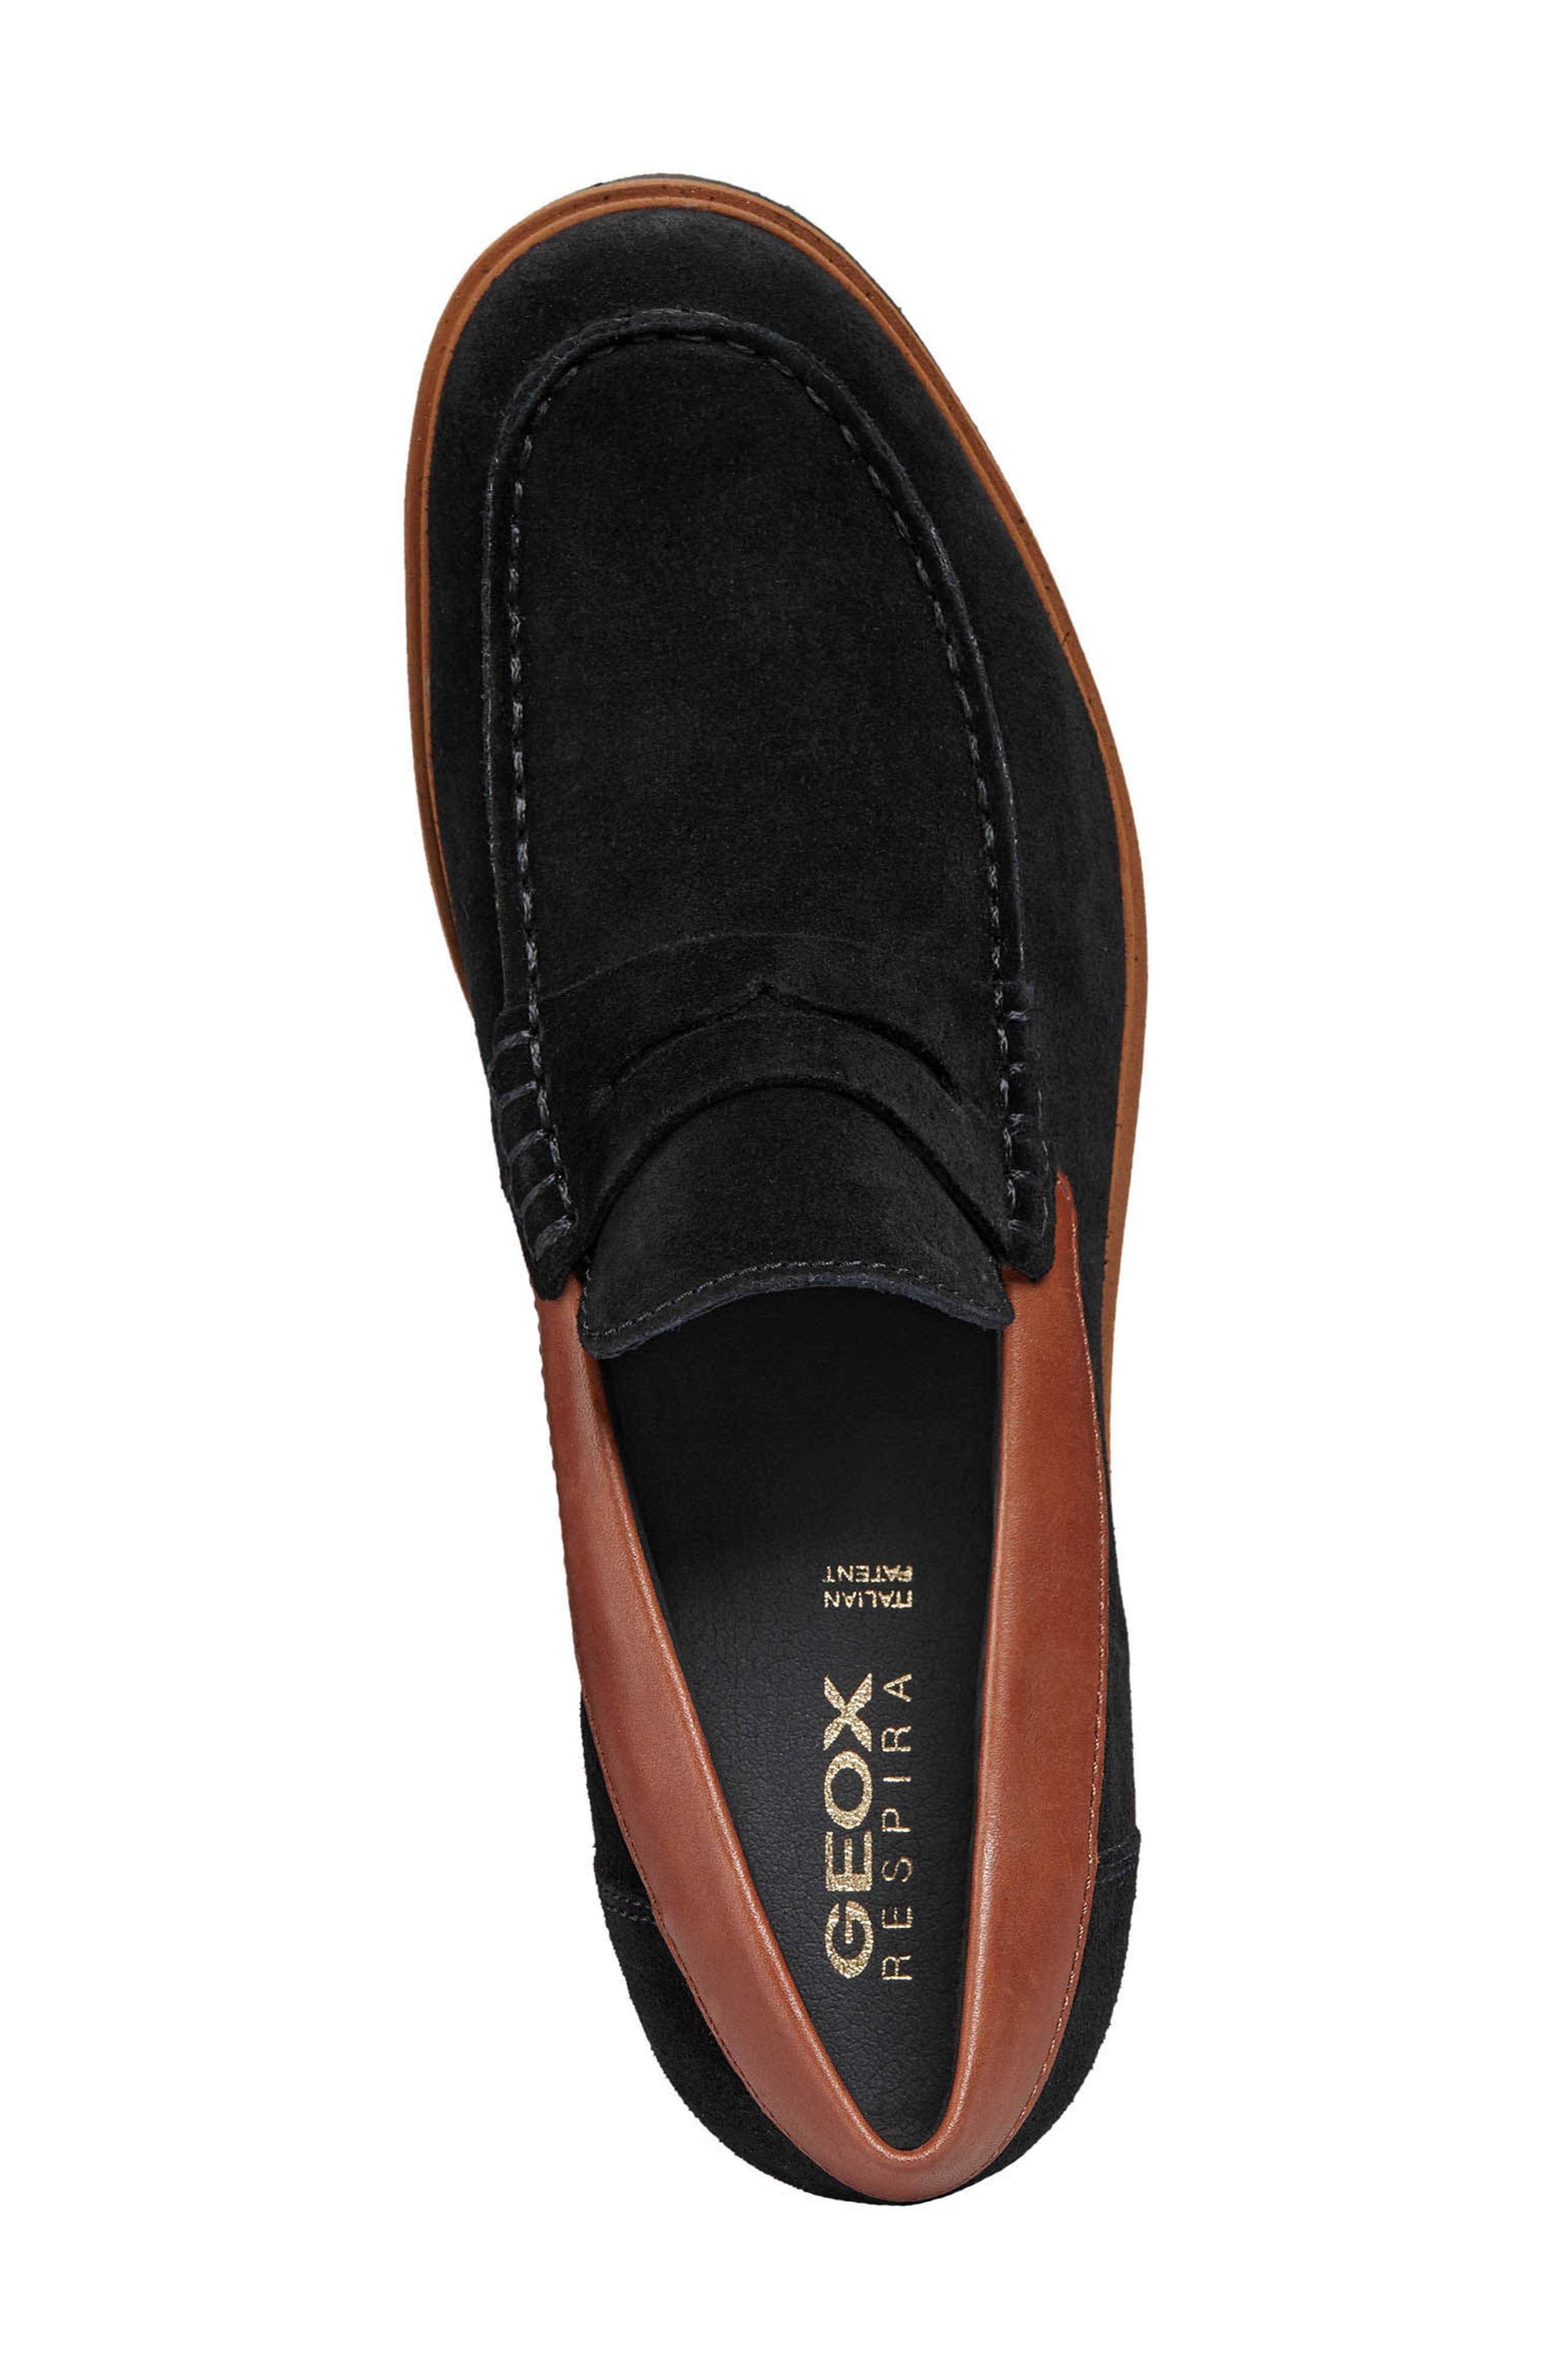 New Pluges 6 Penny Loafer,                             Alternate thumbnail 6, color,                             Black/ Brown Leather